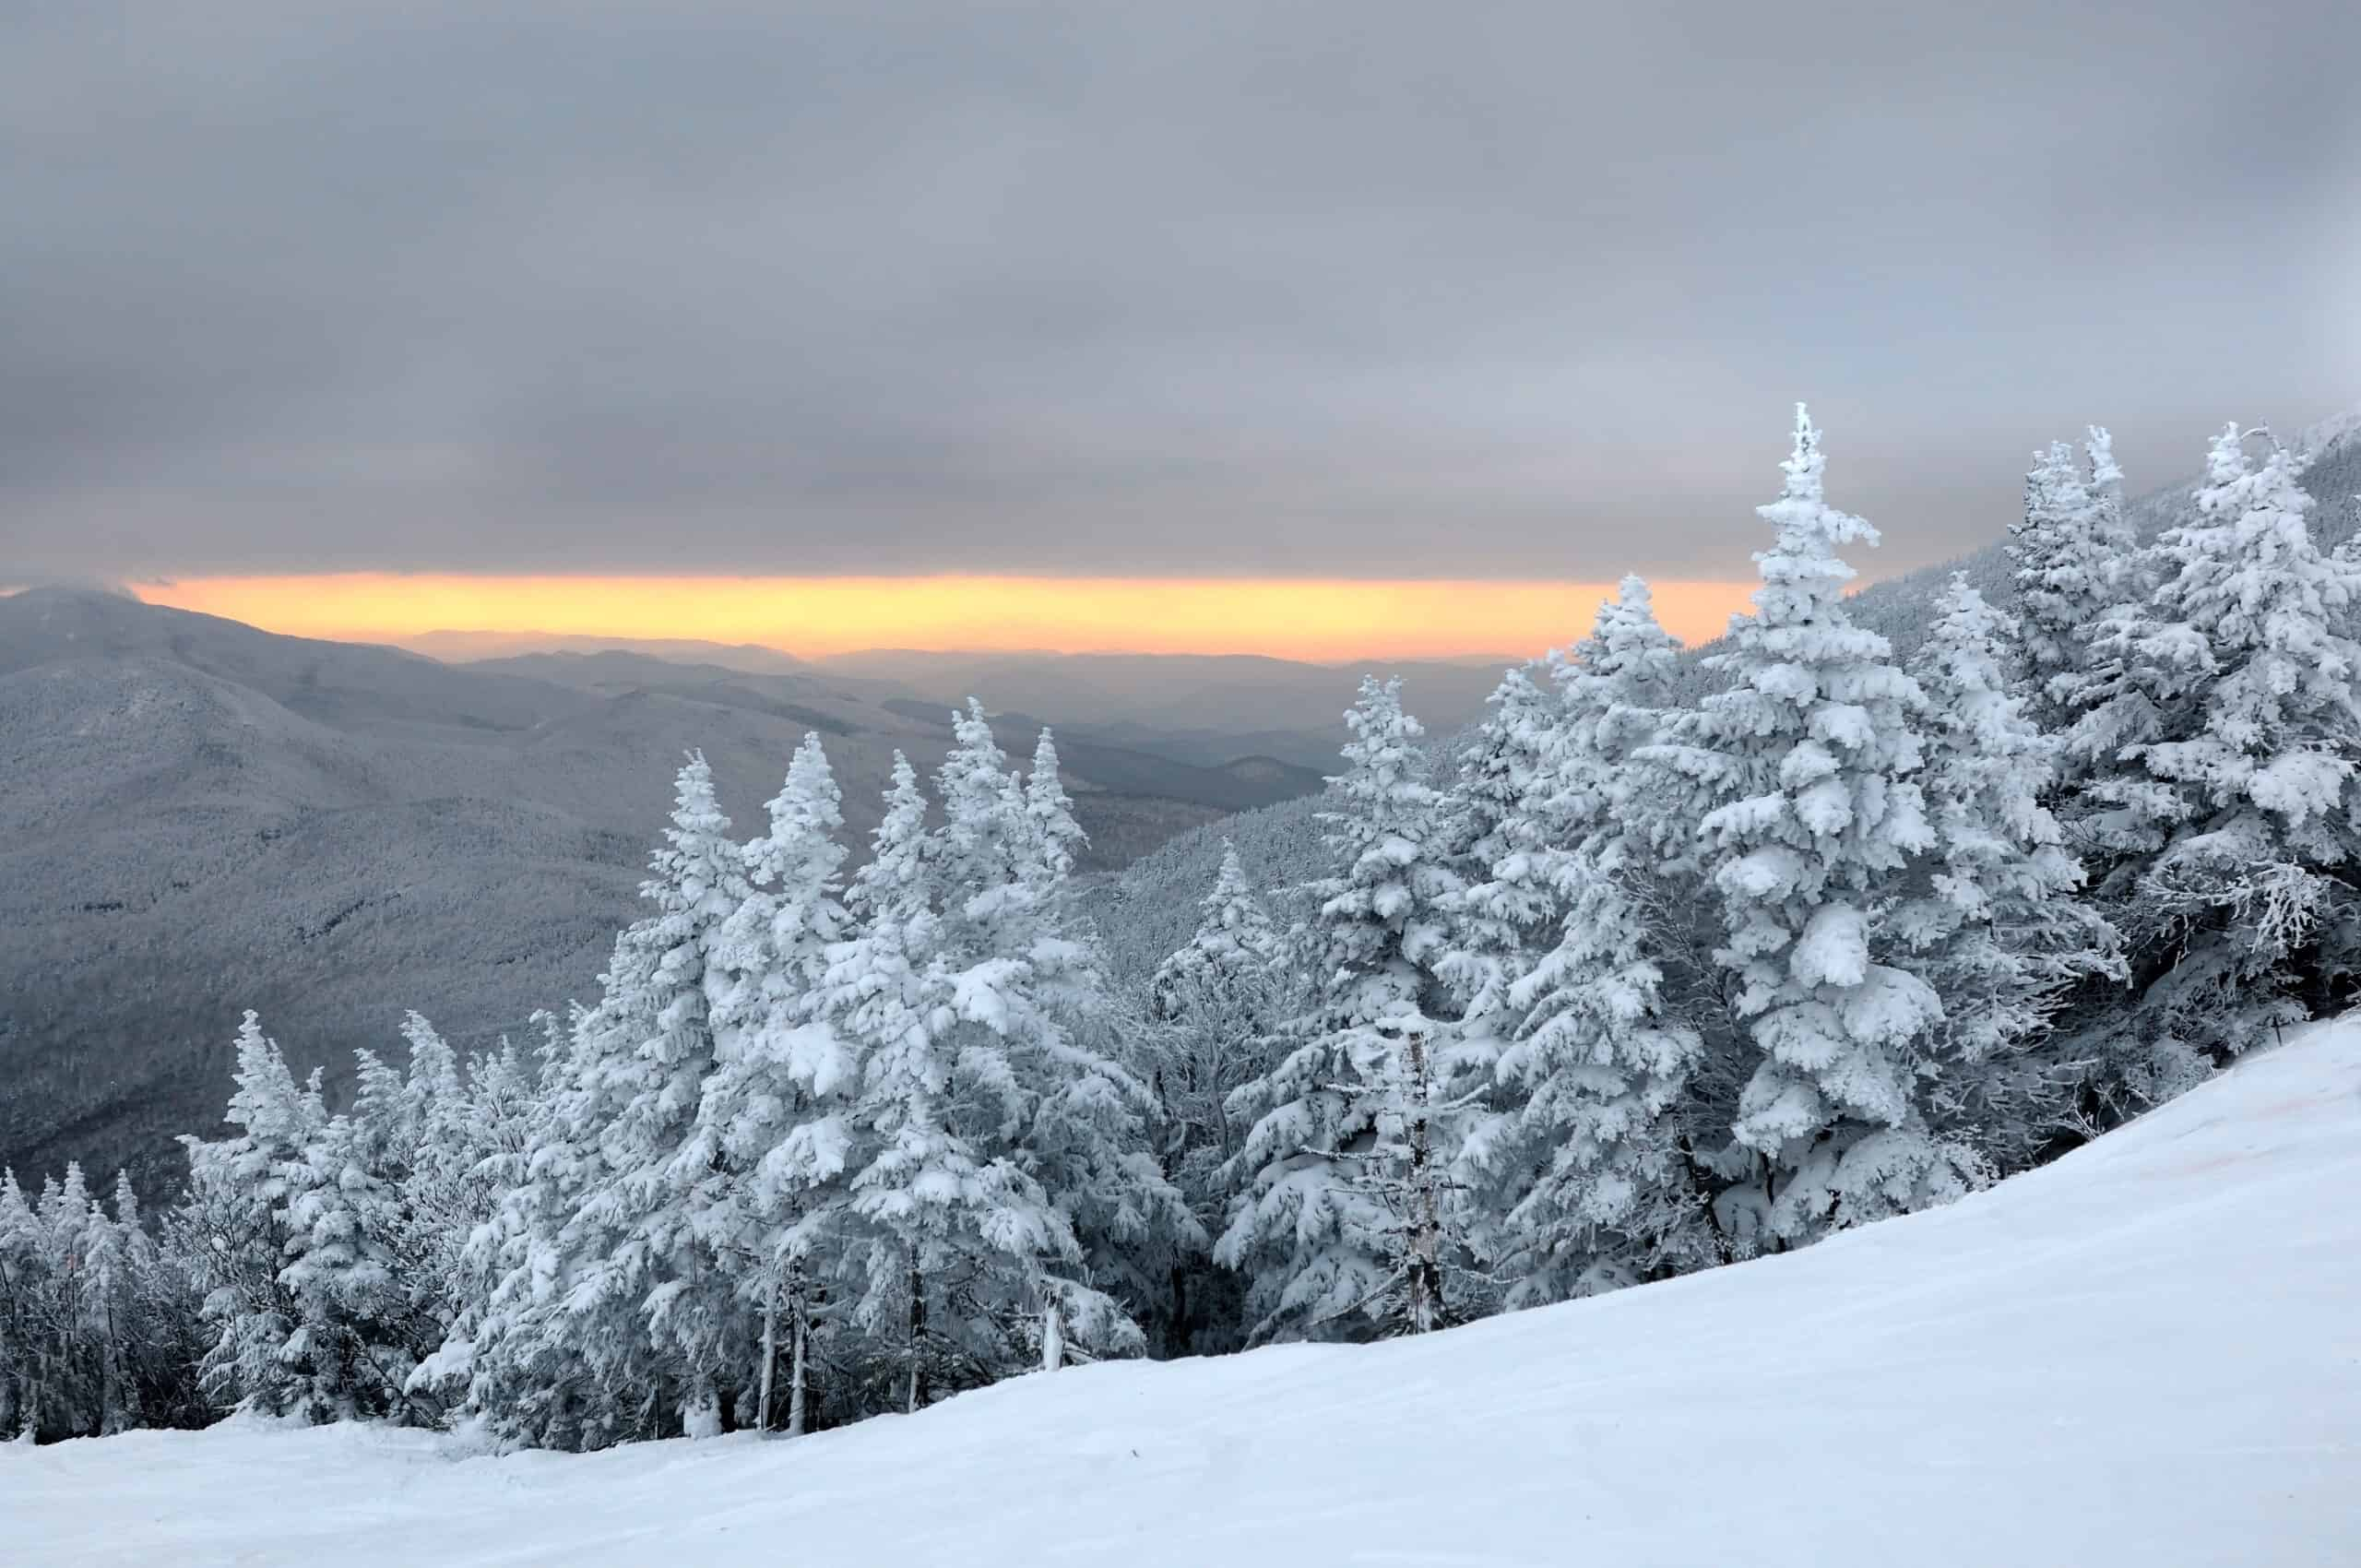 best ski resorts in vermont - image of snow covered trees with cloudy winter sunset in background